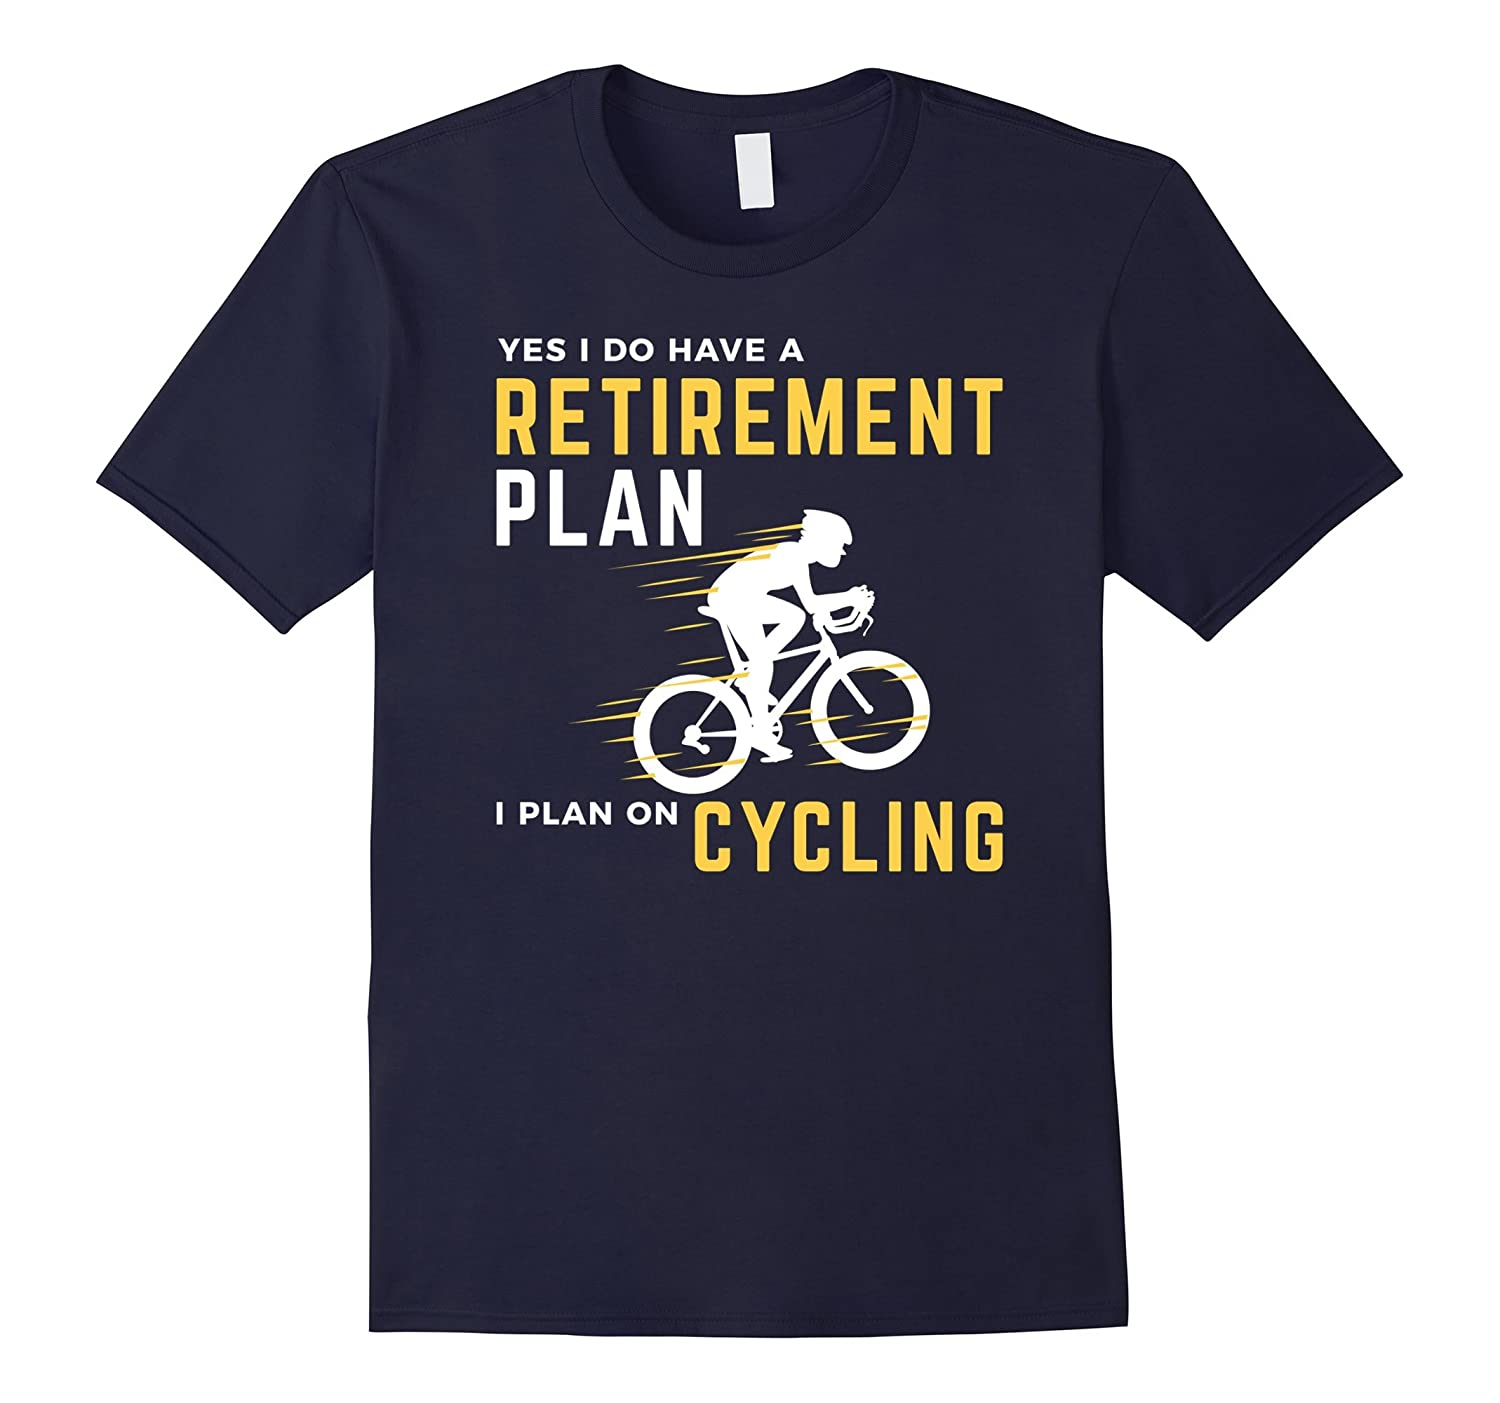 Retirement Plan Funny Bicycle Cycling Humor Graphic T-Shirt-FL